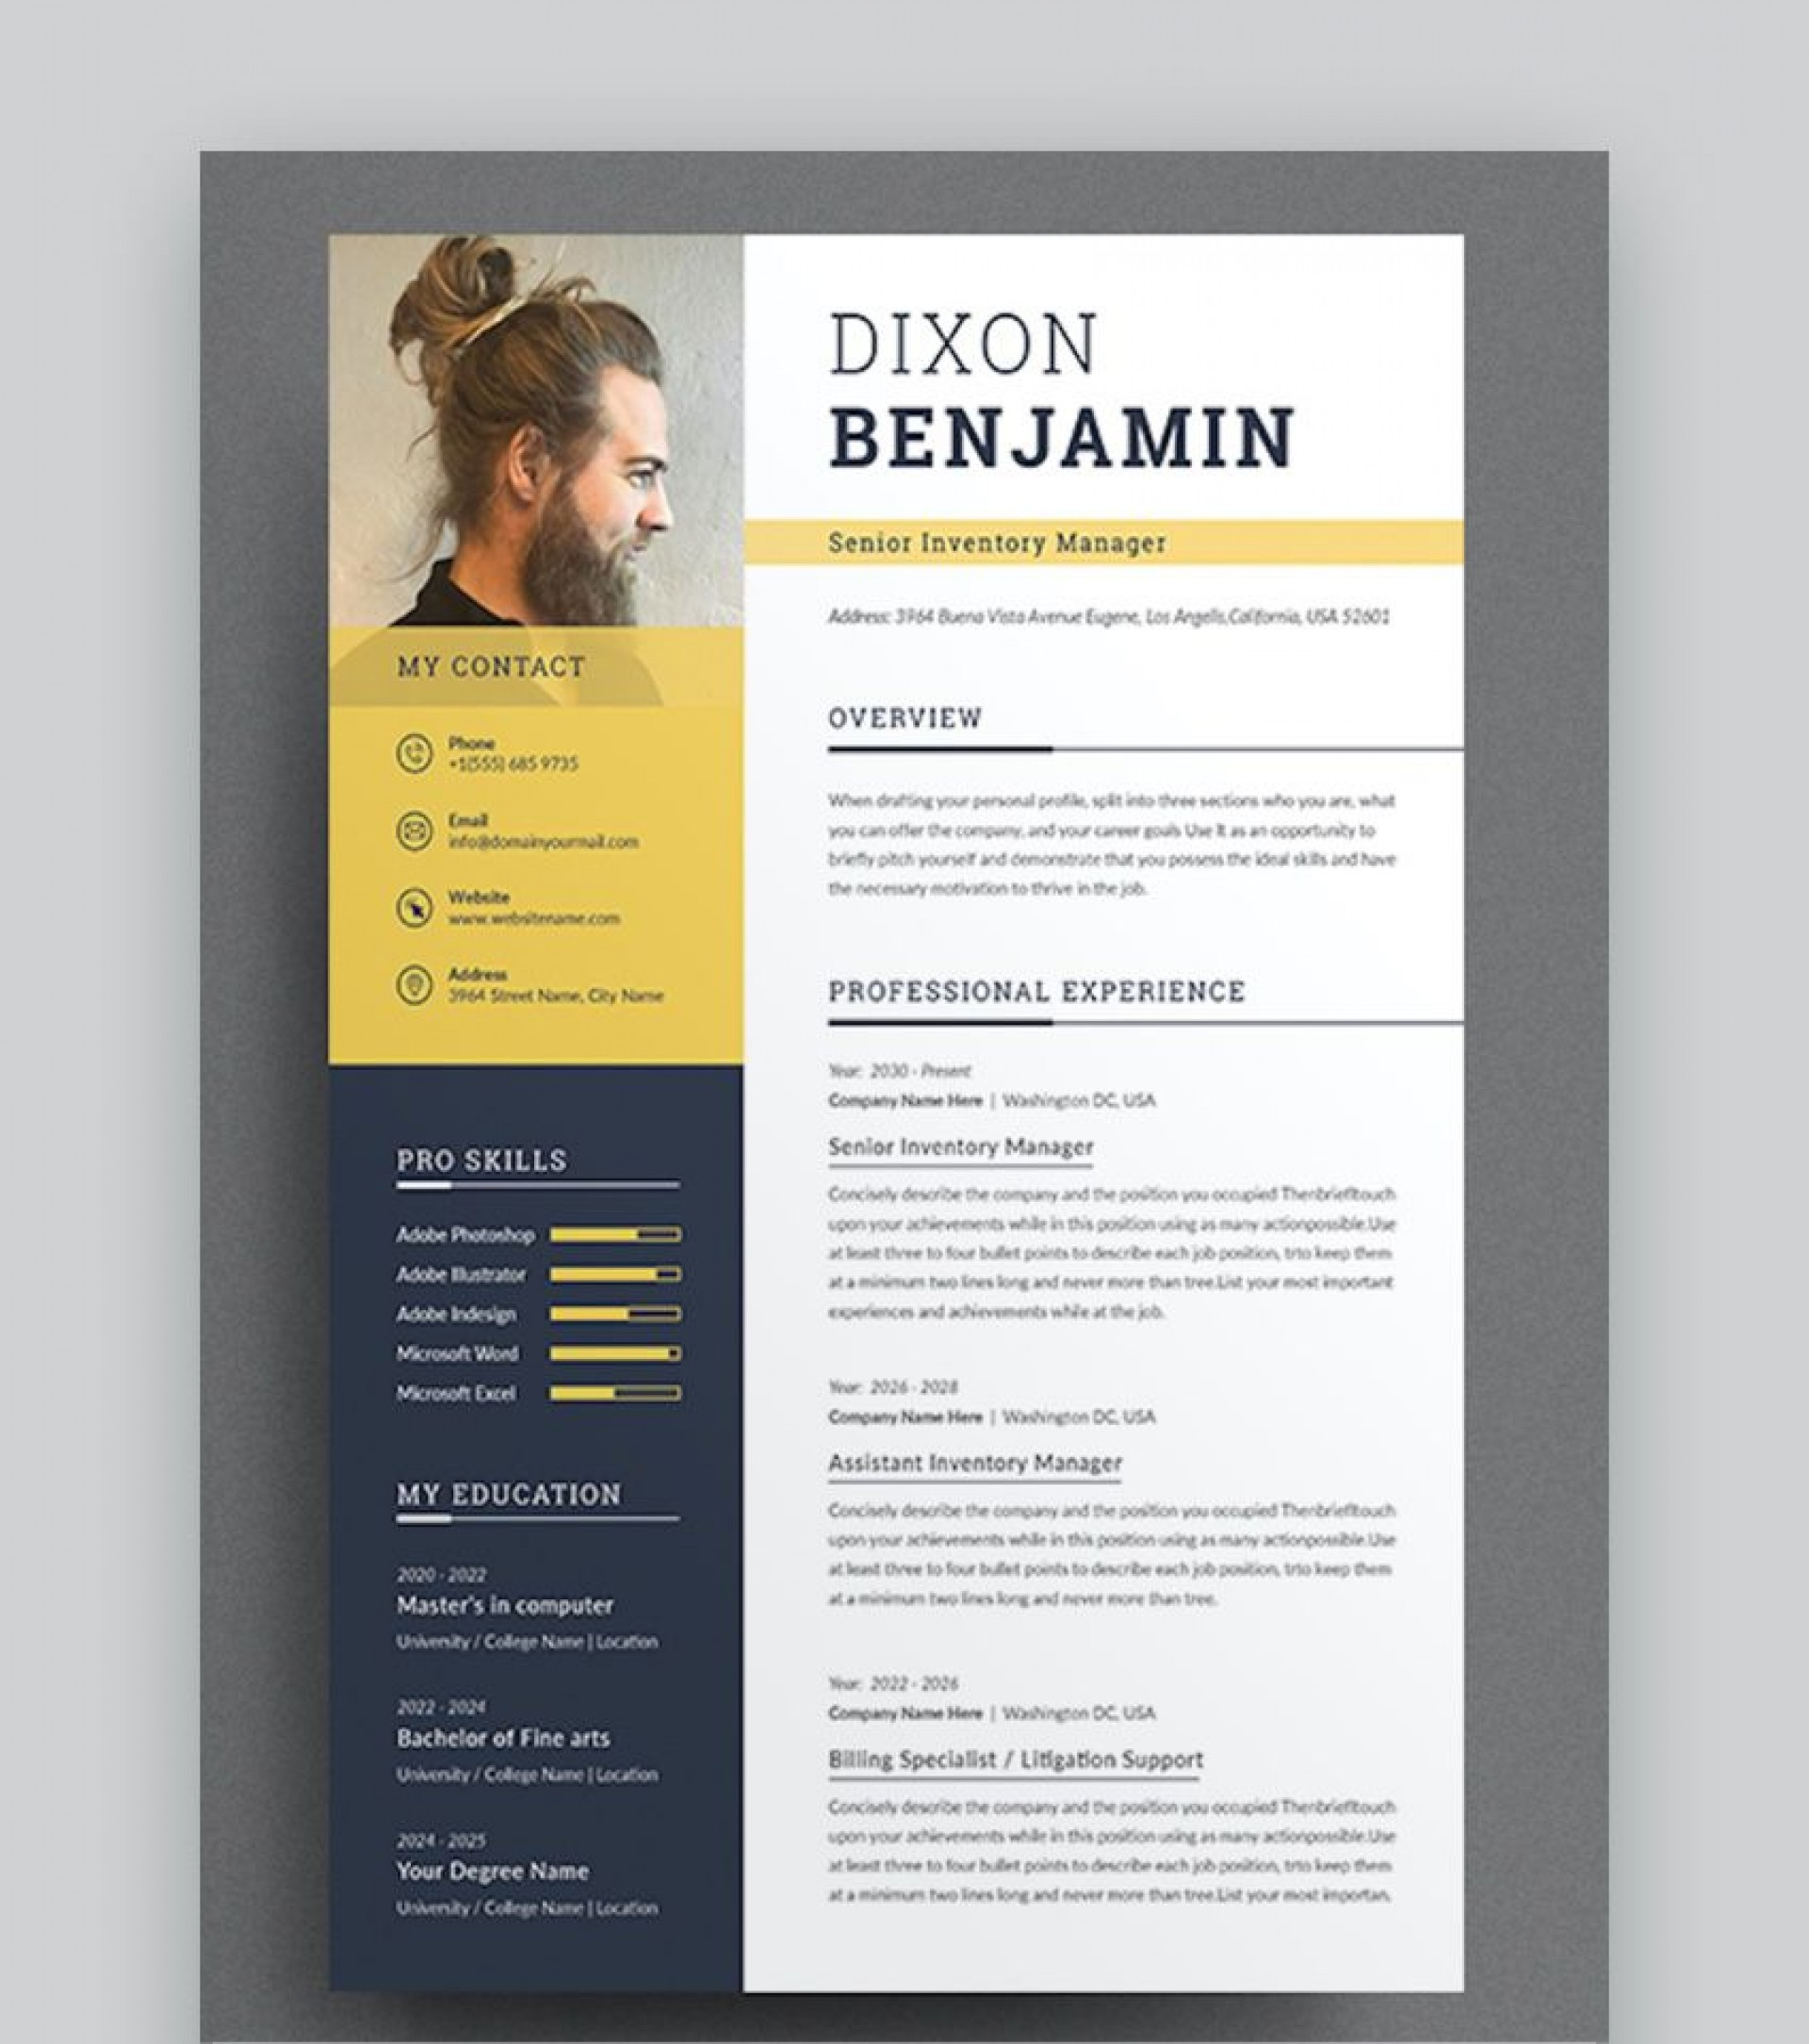 007 Stunning How To Make A Resume Template On Microsoft Word Sample  Create Cv/resume In Docx1920